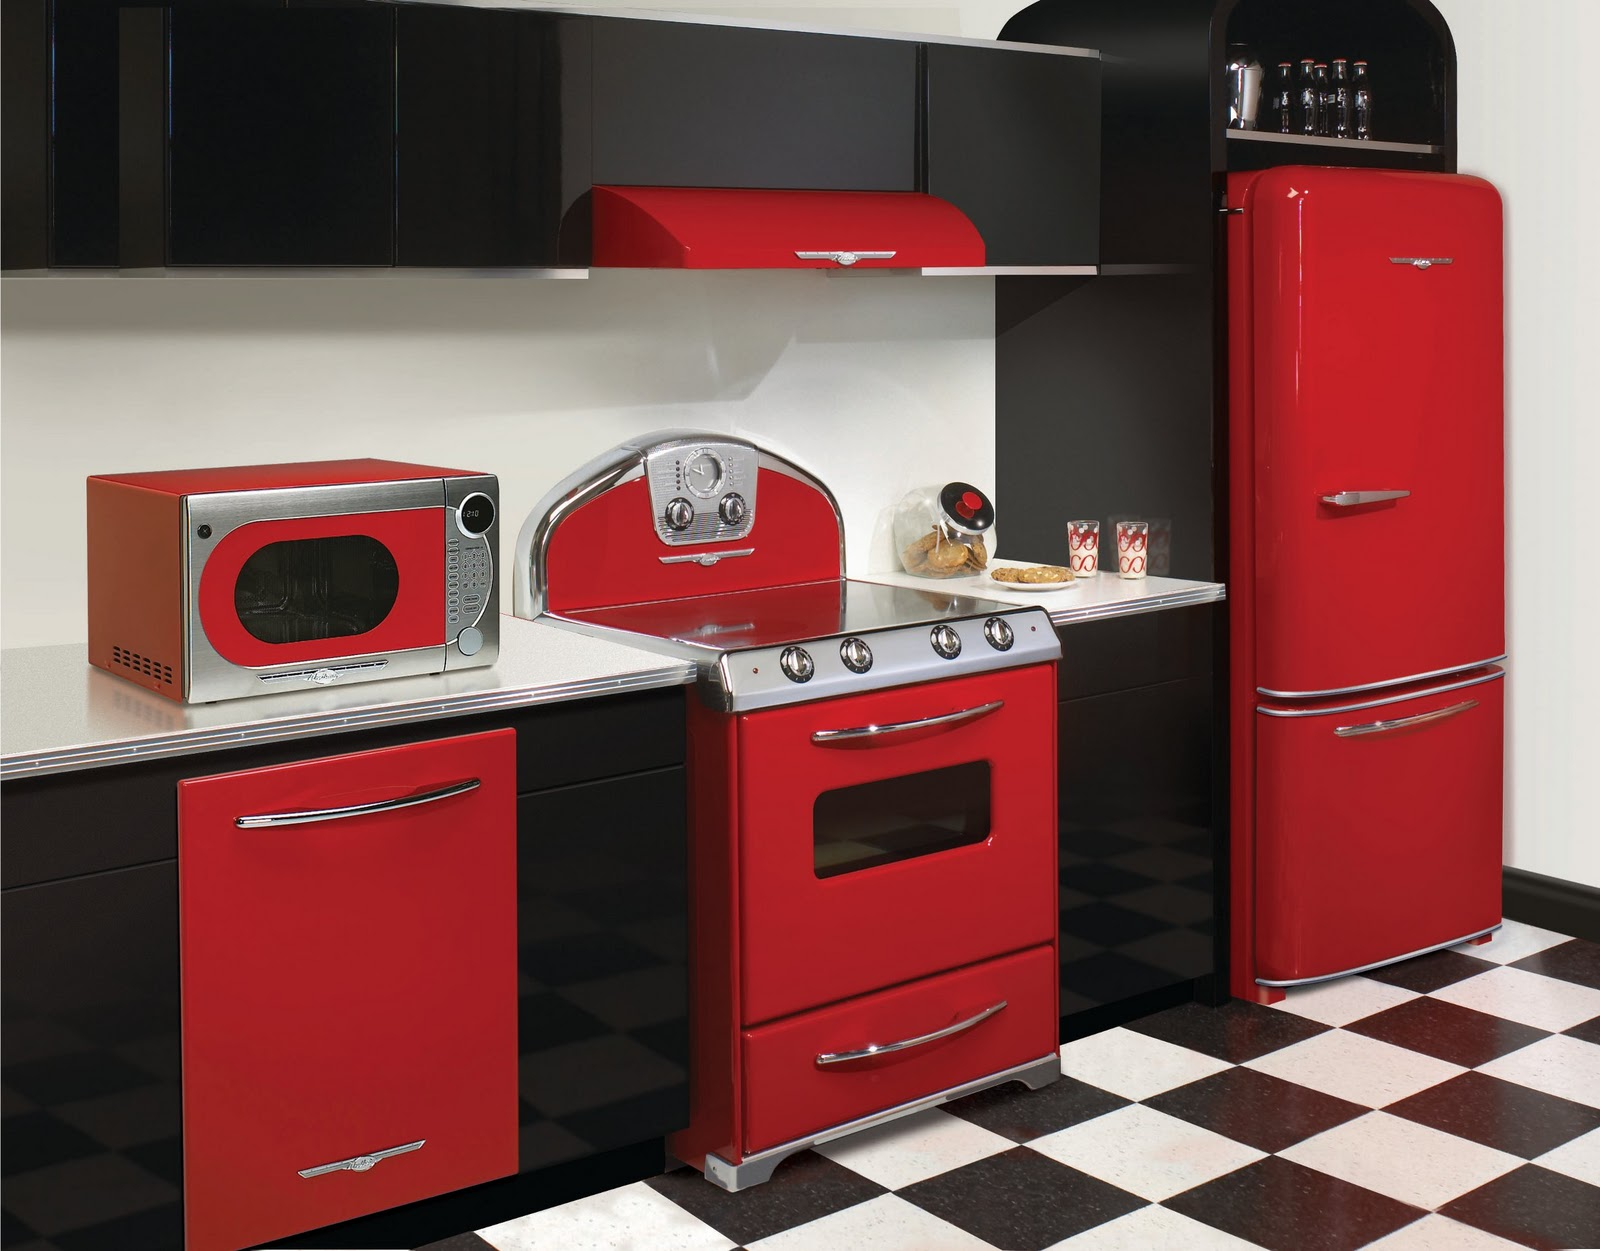 Uncategorized Sales Kitchen Appliances reo appliances sales full red ns kitchen 2010 12